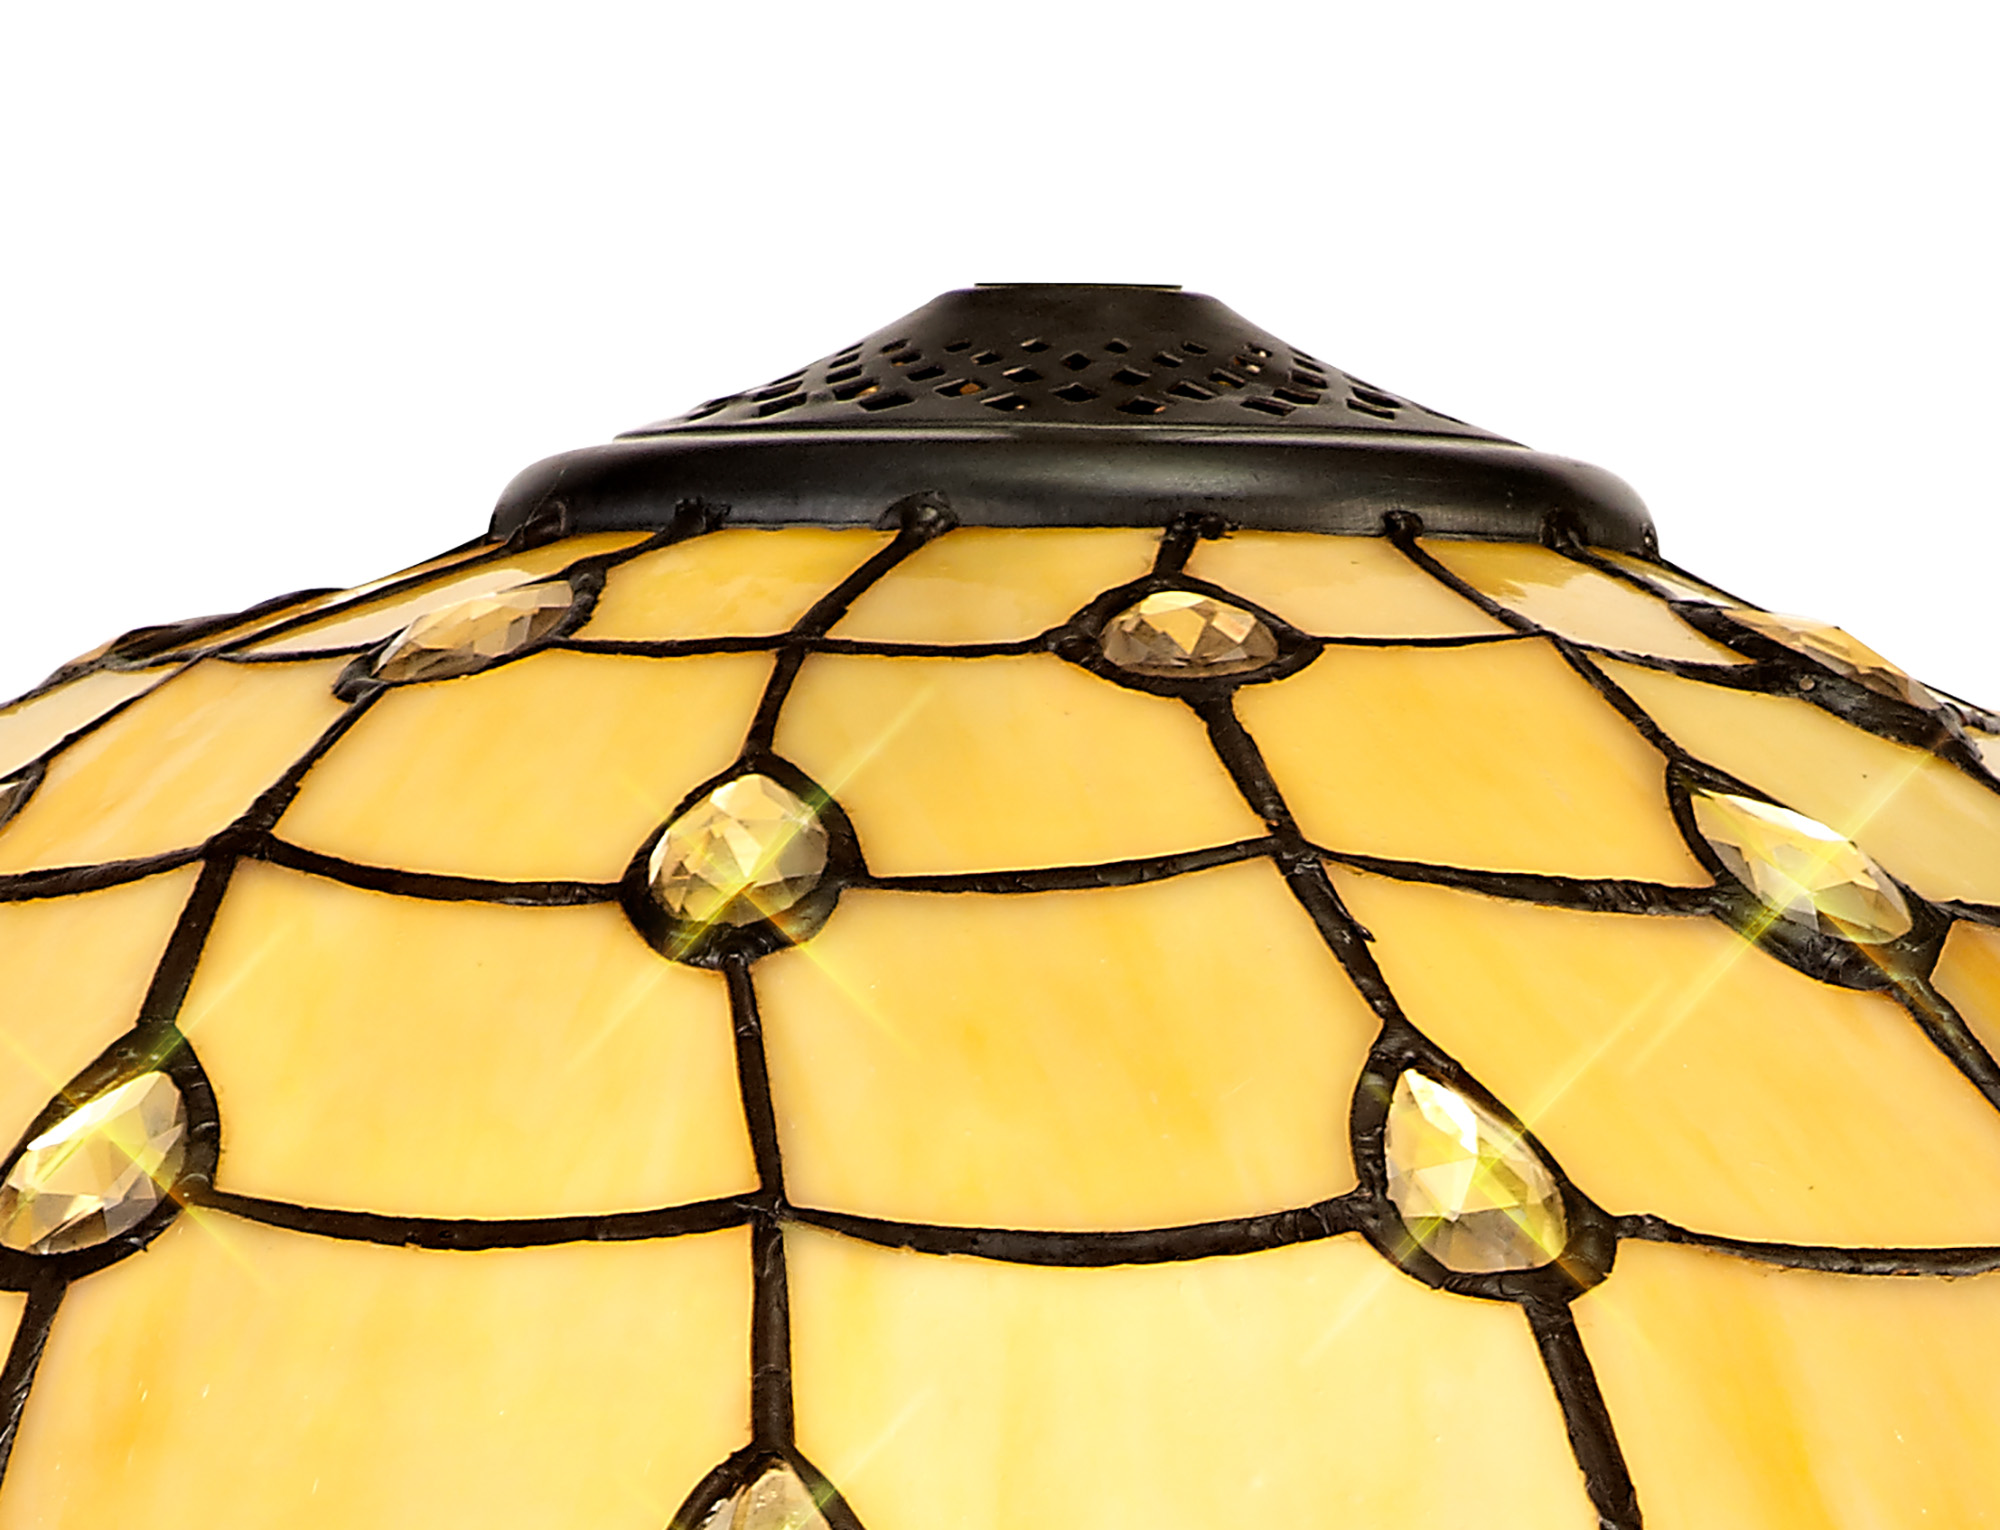 3 Light Uplighter Pendant E27 With 40cm Tiffany Shade, Beige/Clear Crystal/Aged Antique Brass